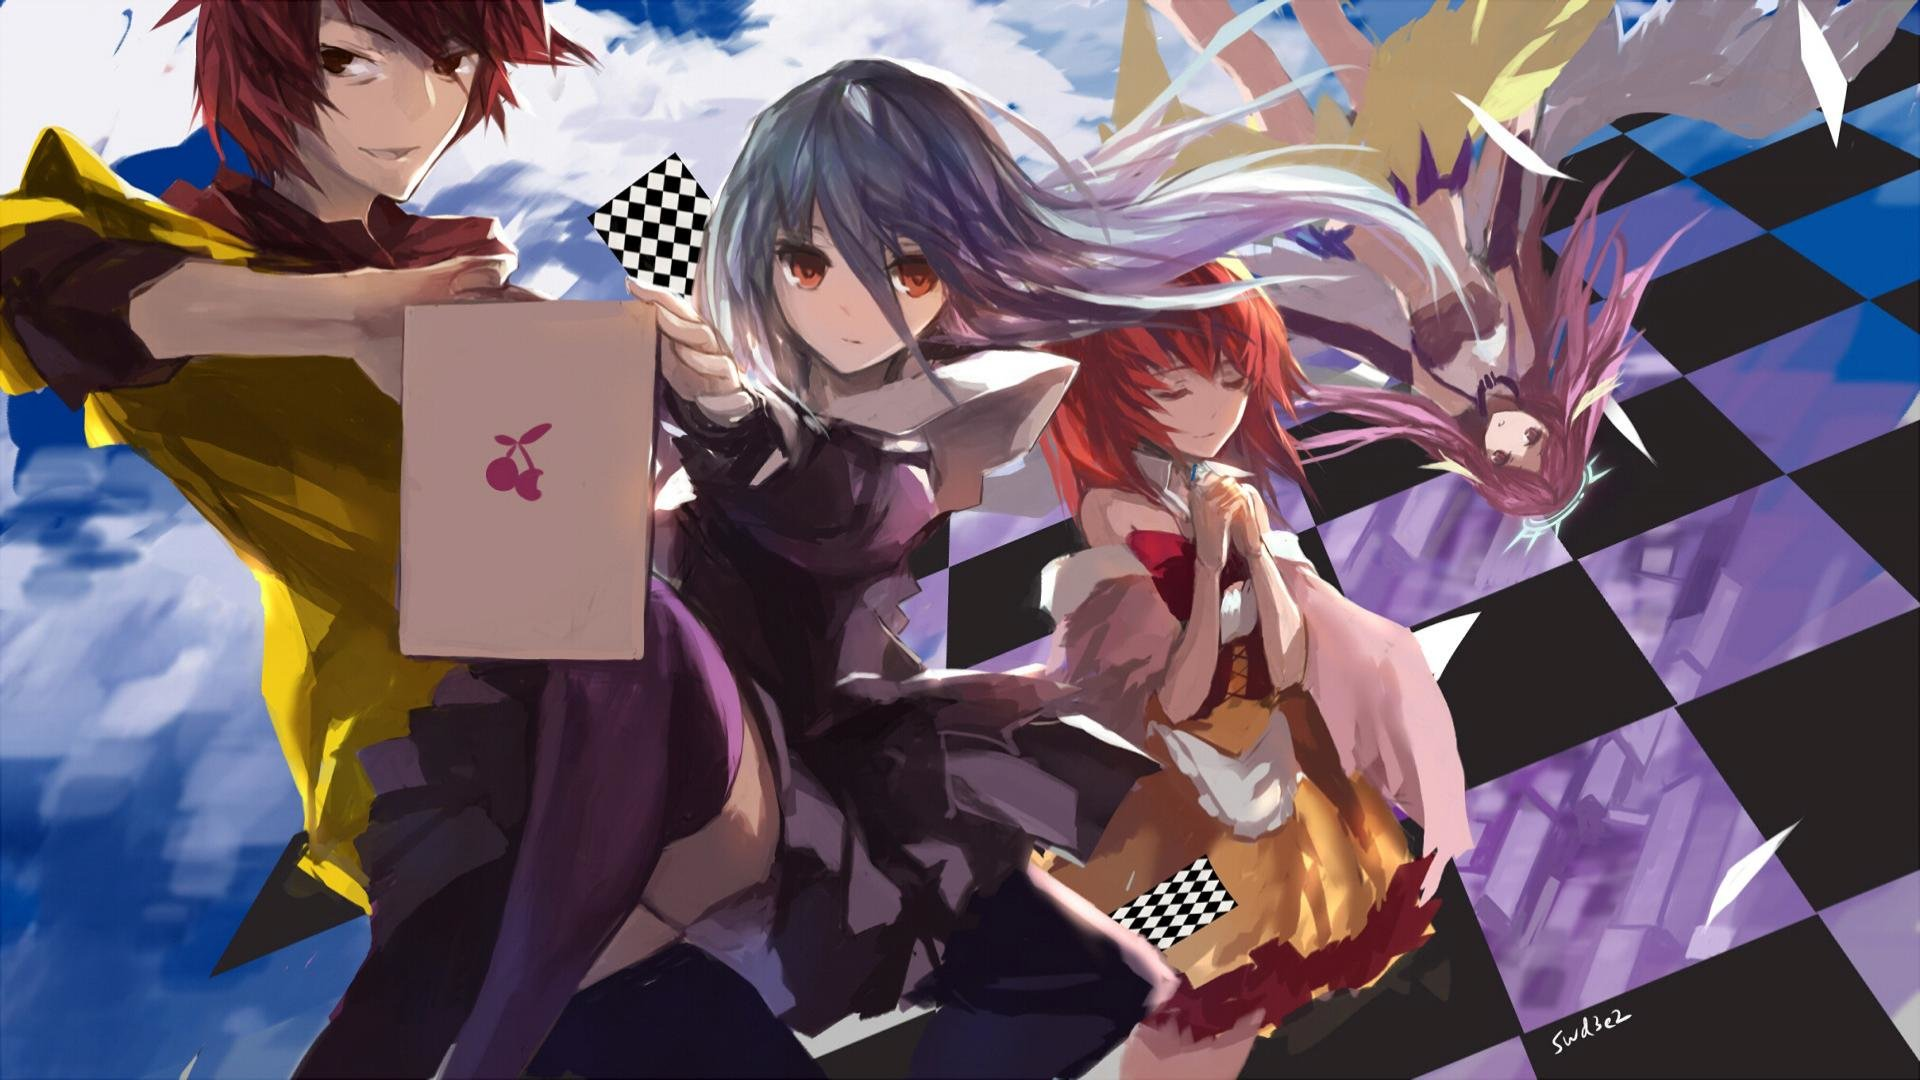 Download hd 1080p No Game No Life computer wallpaper ID:102693 for free